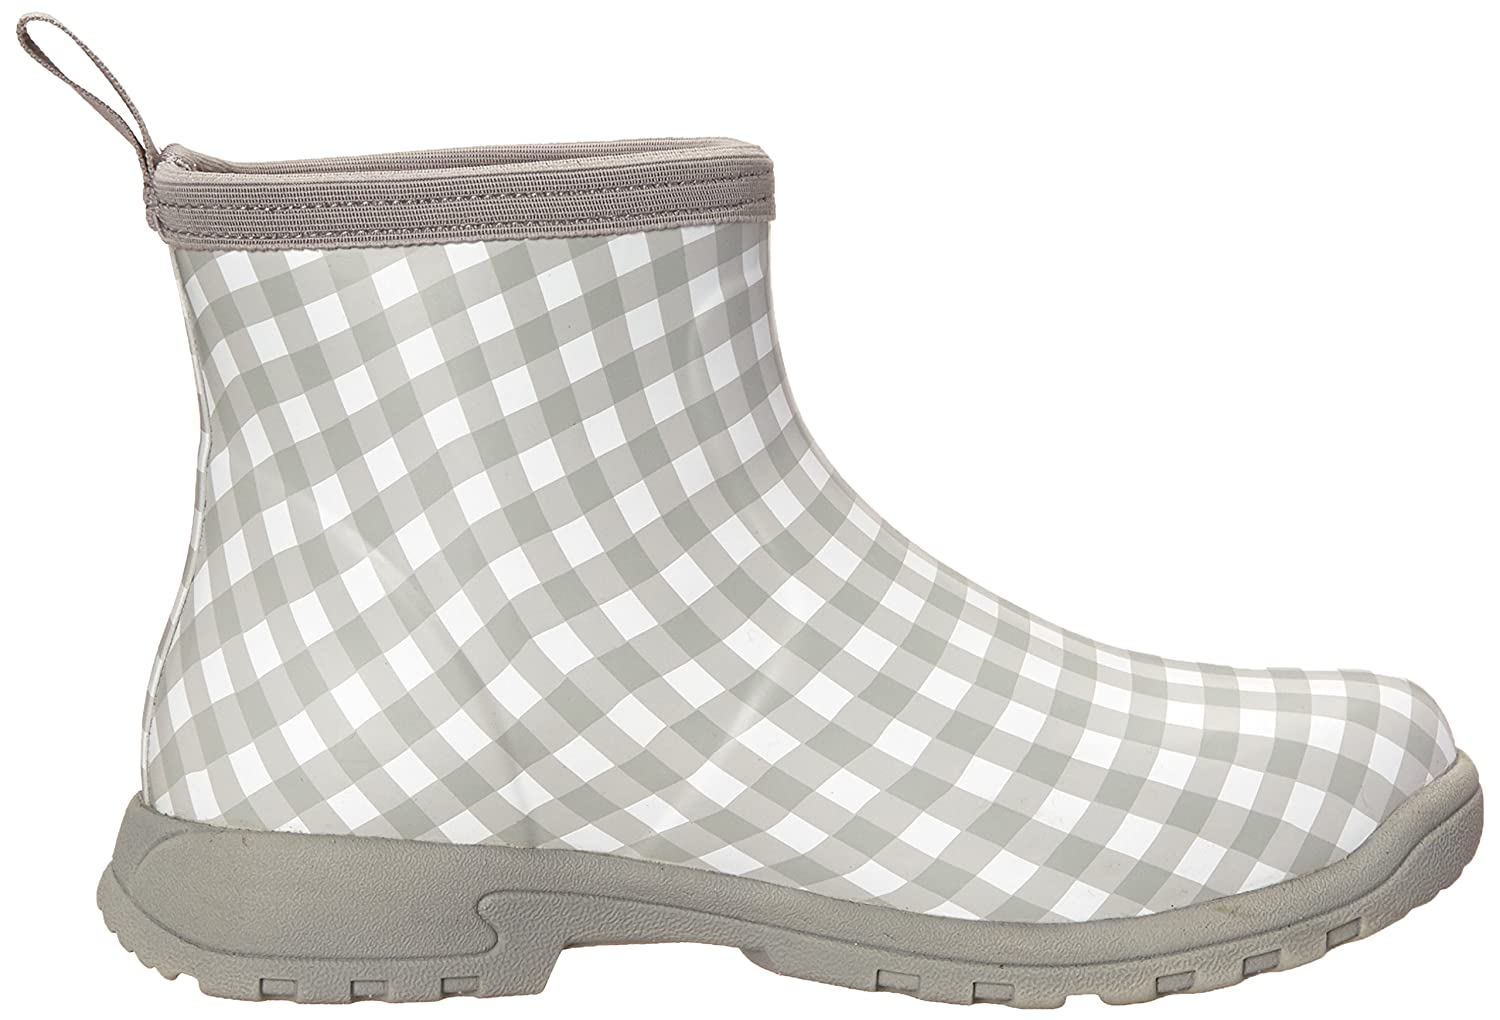 MuckBoots Women's Breezy Casual B00NV65L4U All Purpose Ankle Boot B00NV65L4U Casual 5 B(M) US|Gray Gingham 83761d